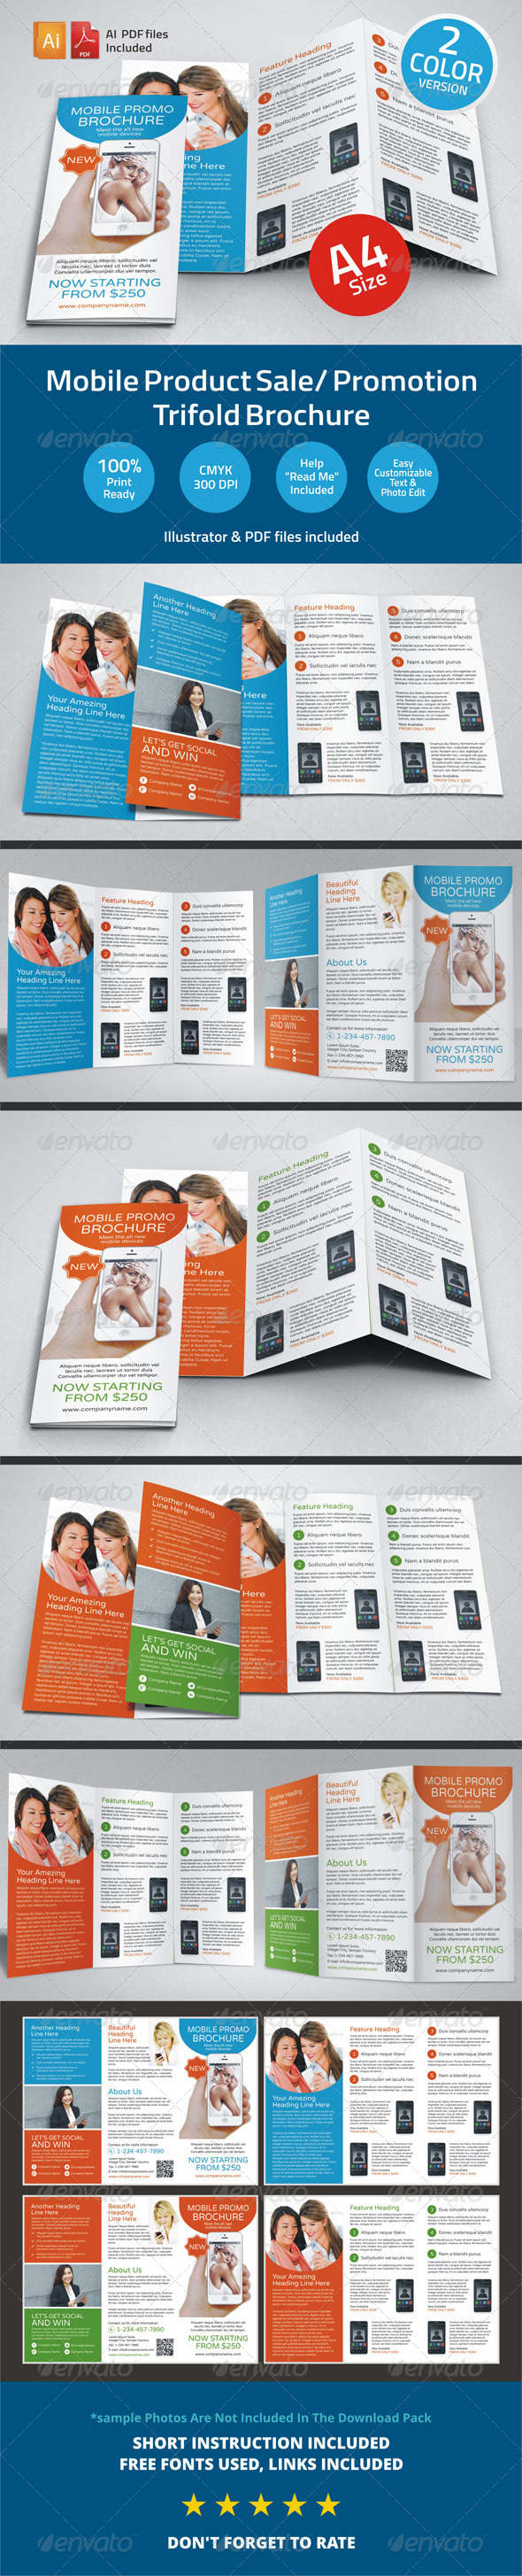 Mobile Product Sale/ Promotion Trifold Brochure - Corporate Brochures